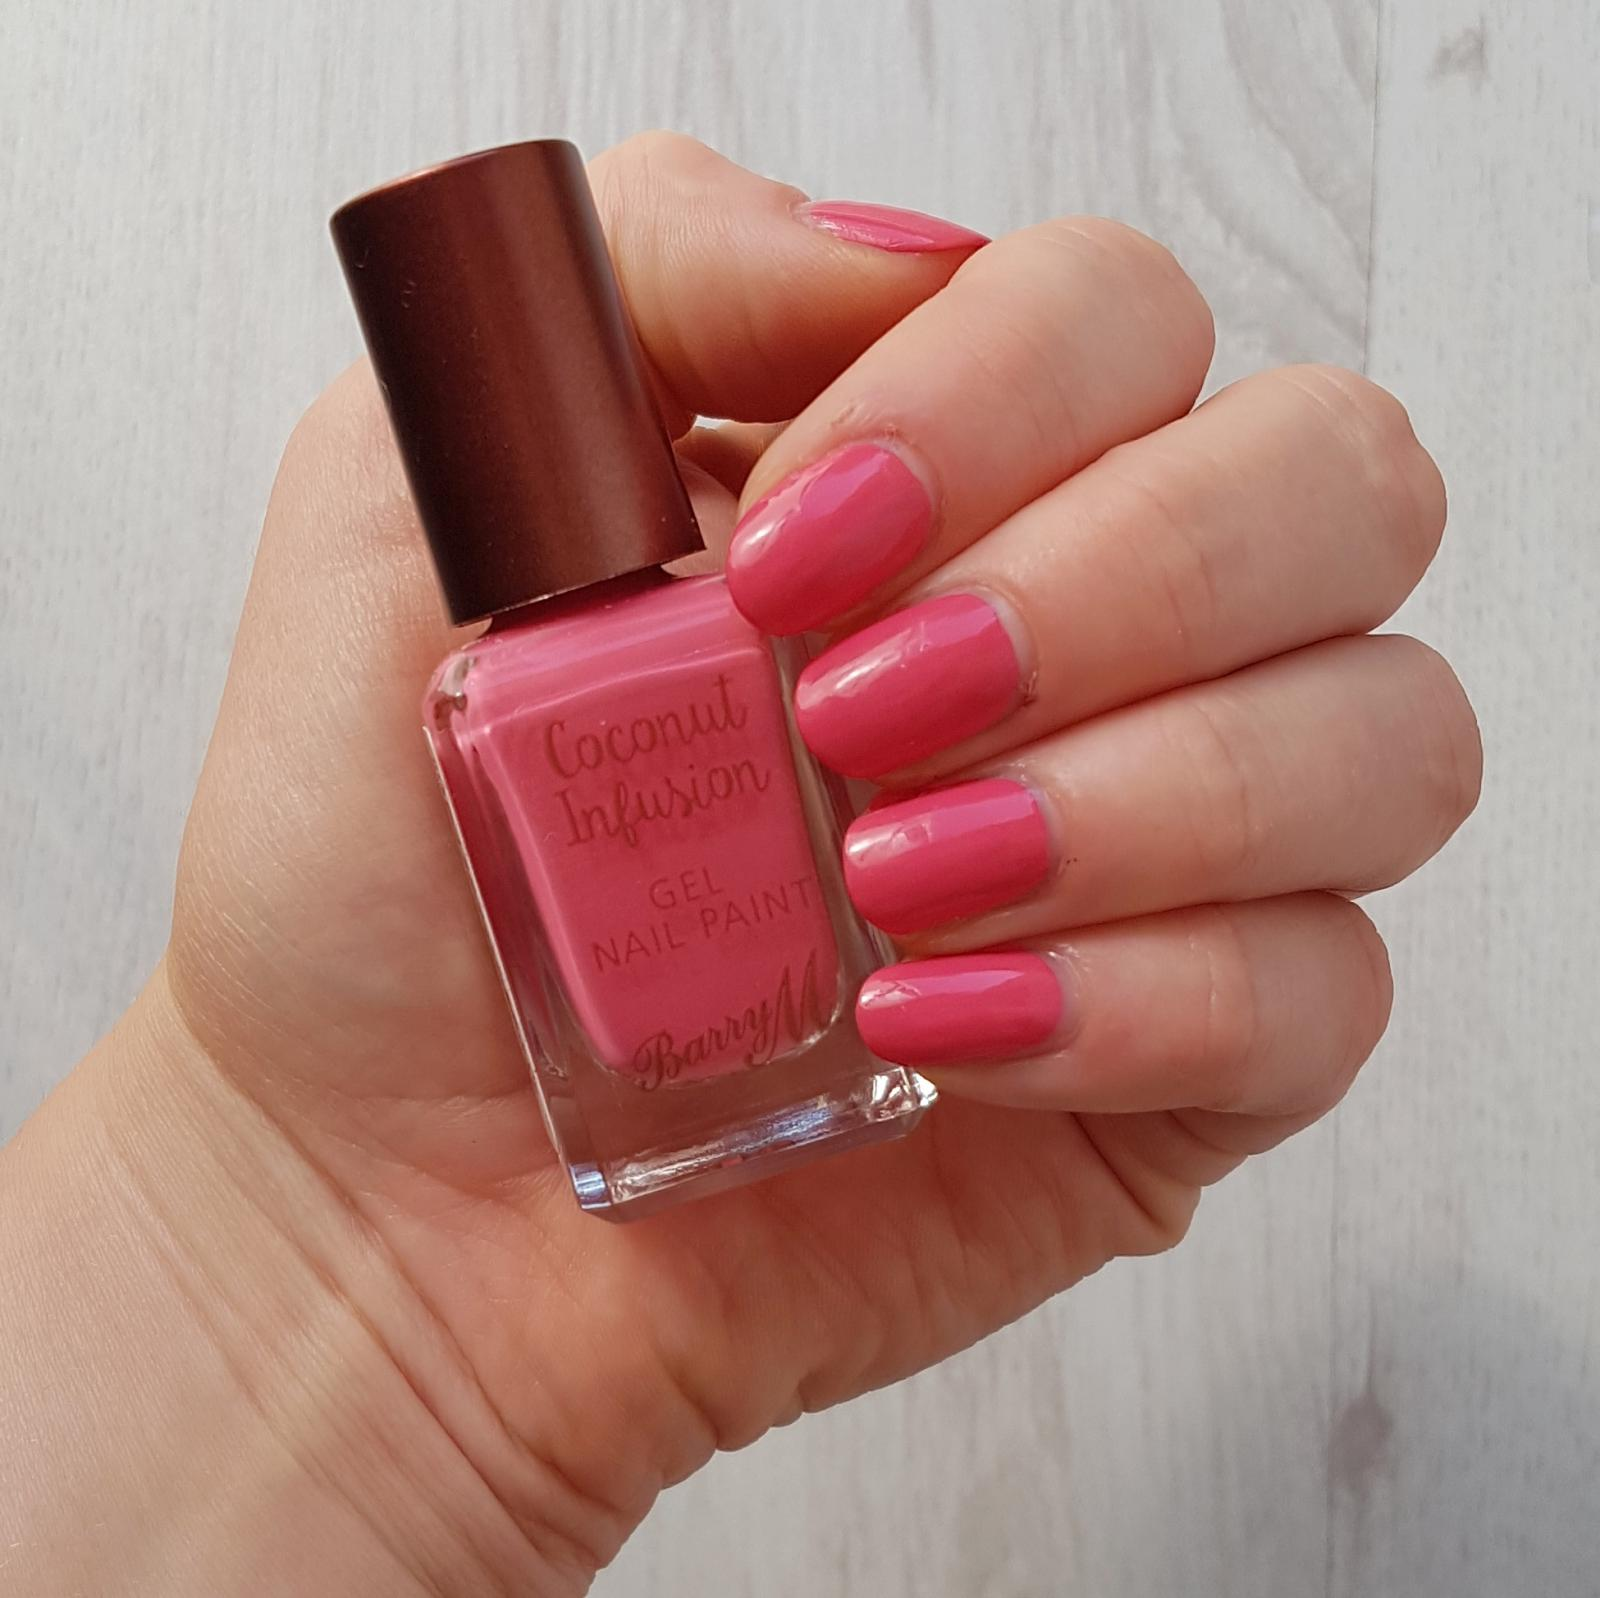 Barry M Coconut Infusion Aloha Swatch